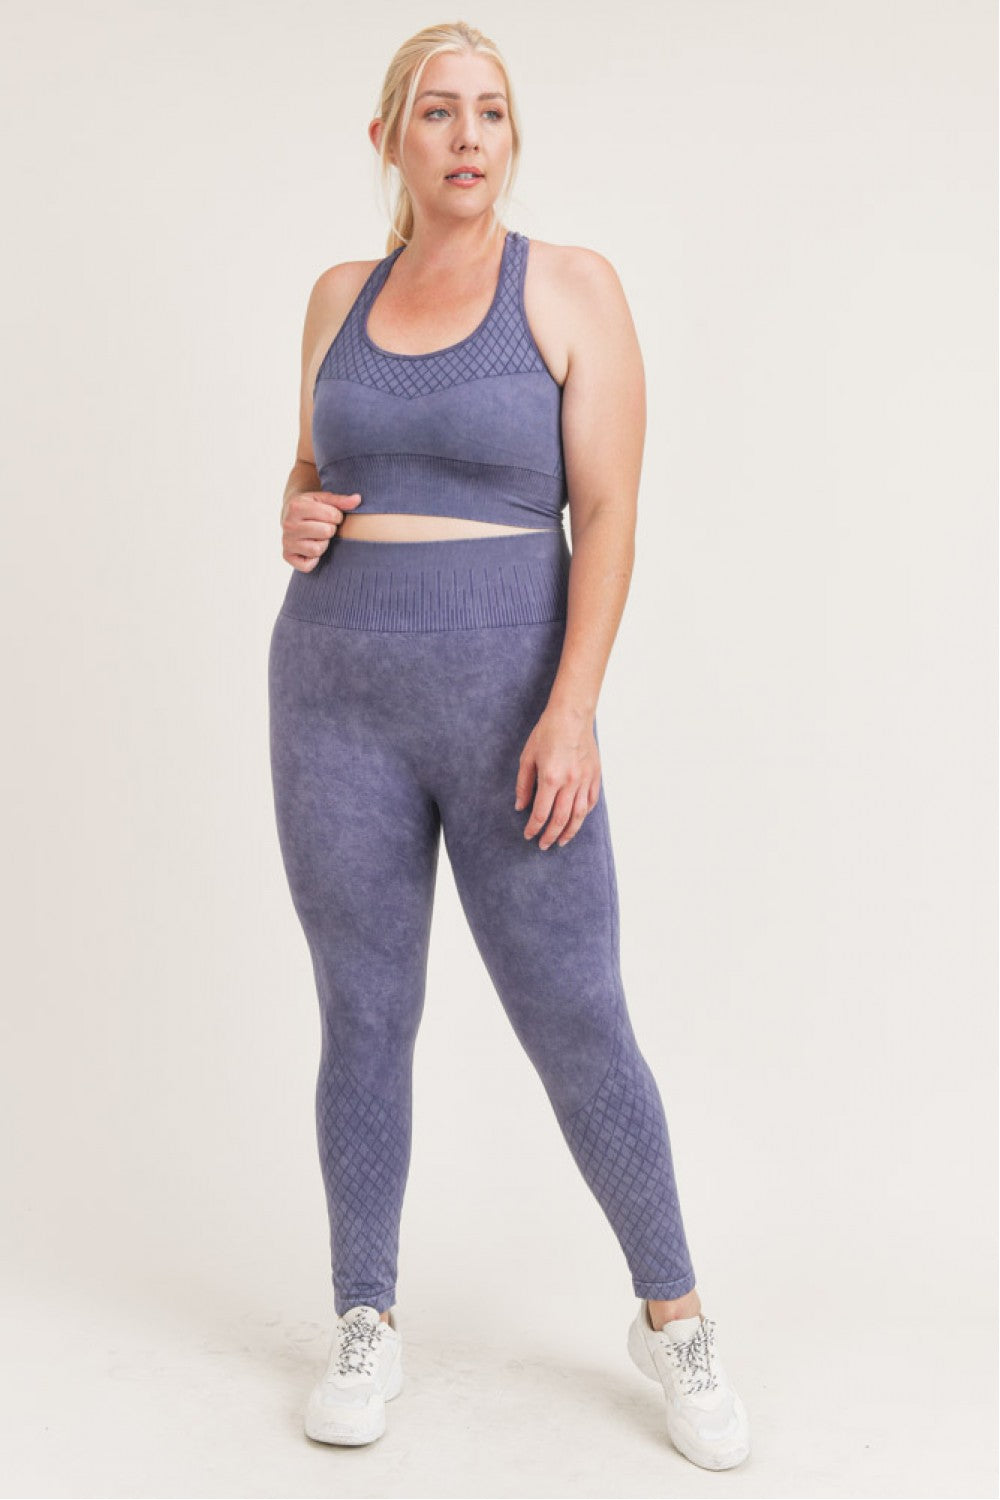 Echelon Seamless Mineral Wash Sports Bra